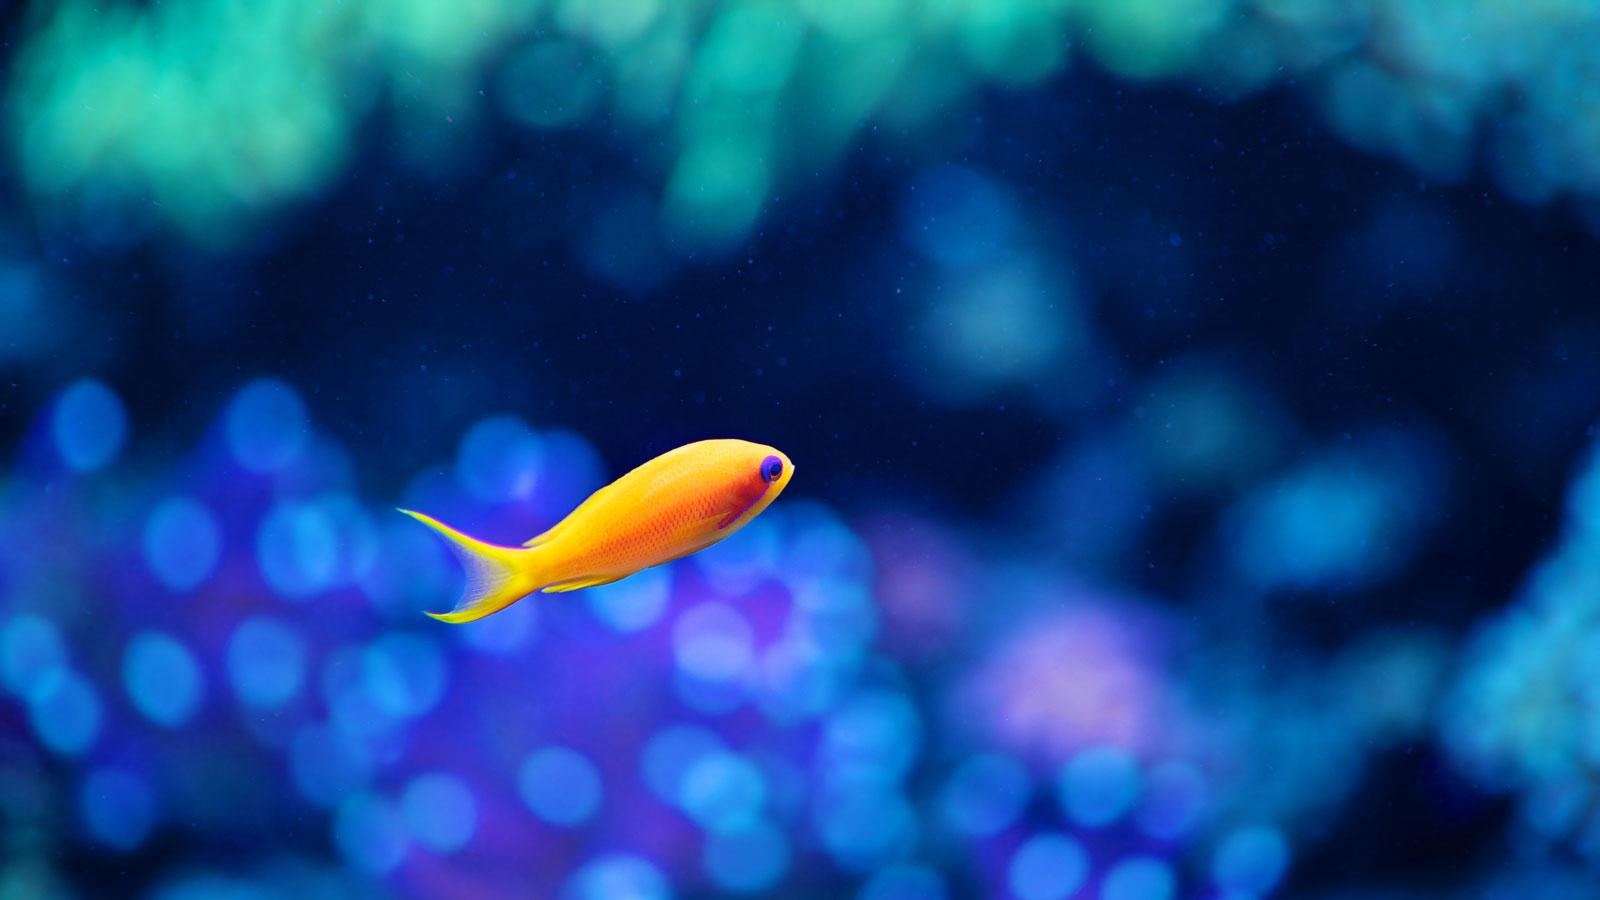 Fish HD Wallpaper Android Apps on Google Play